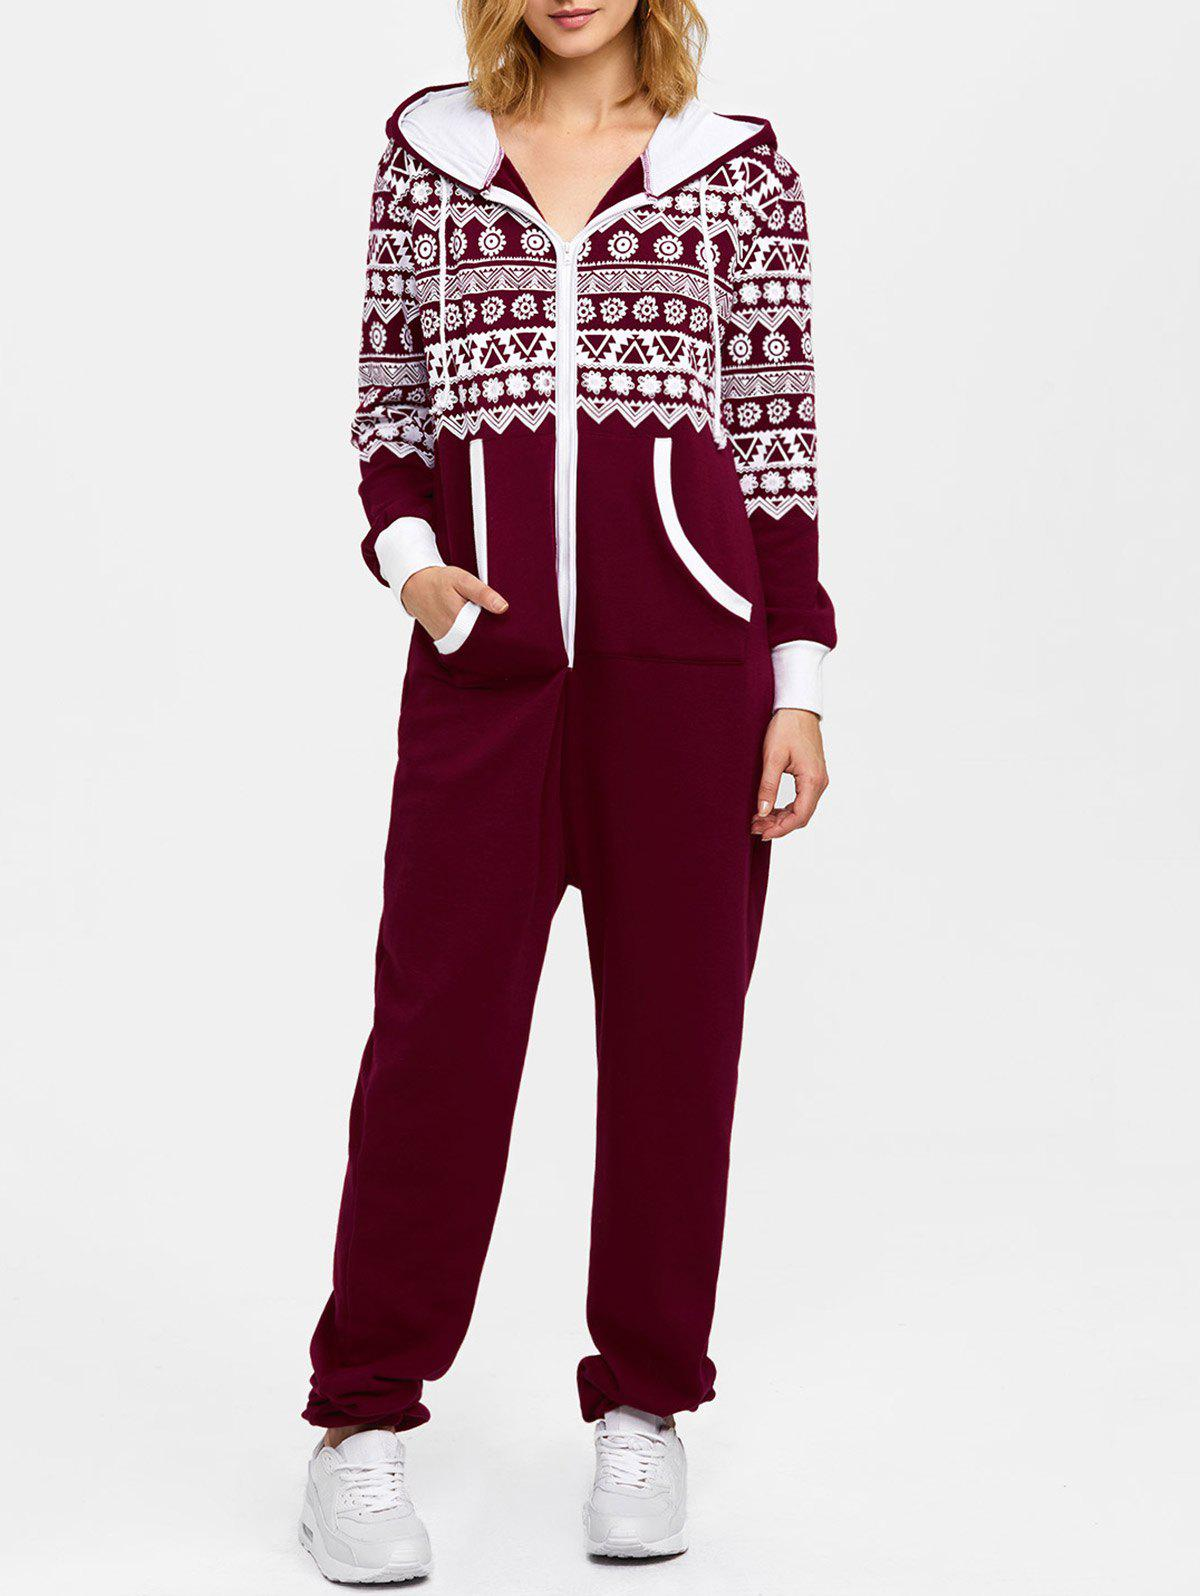 Hooded Geometry Print Christmas JumpsuitWOMEN<br><br>Size: M; Color: WINE RED; Material: Polyester; Fit Type: Loose; Pattern Type: Geometric; Style: Casual; Season: Fall,Spring; With Belt: No; Weight: 0.850kg; Package Contents: 1 x Jumpsuit;